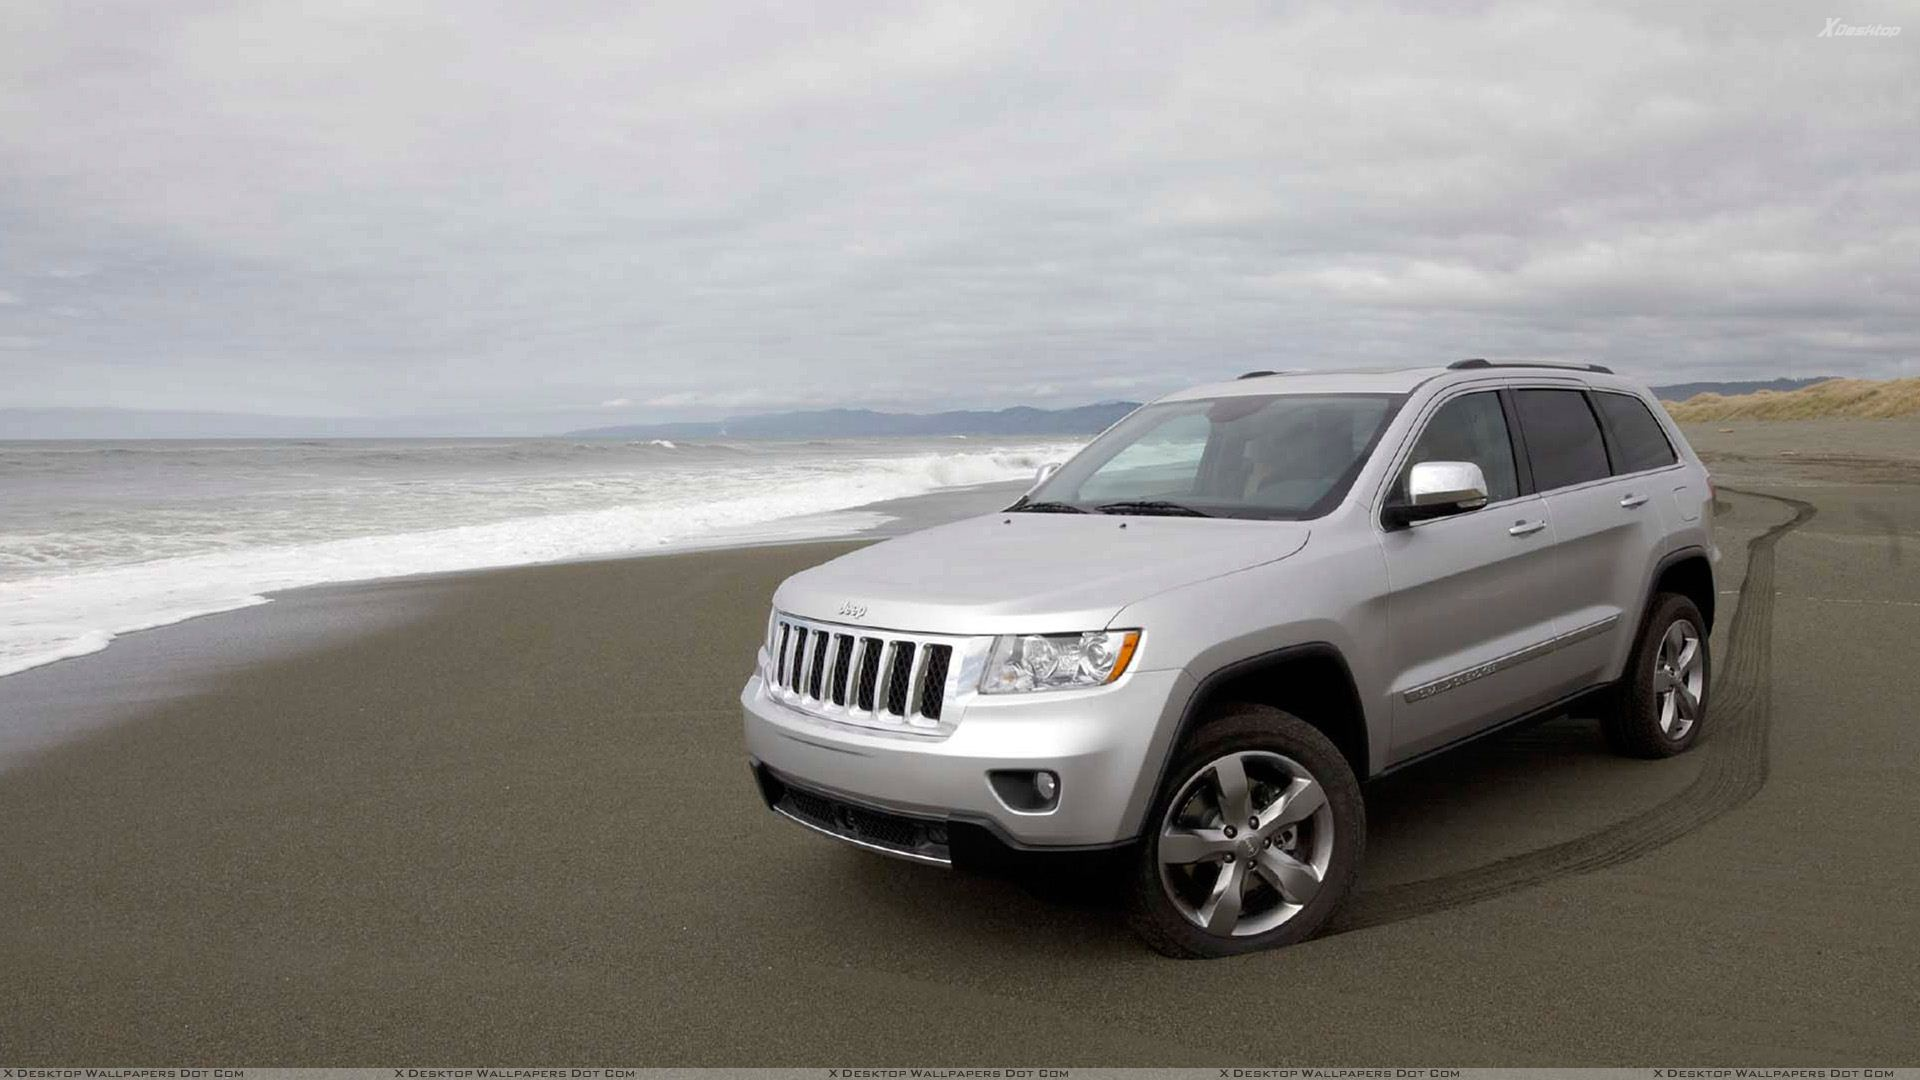 Jeep Grand Cherokee Wallpapers Photos Images In Hd